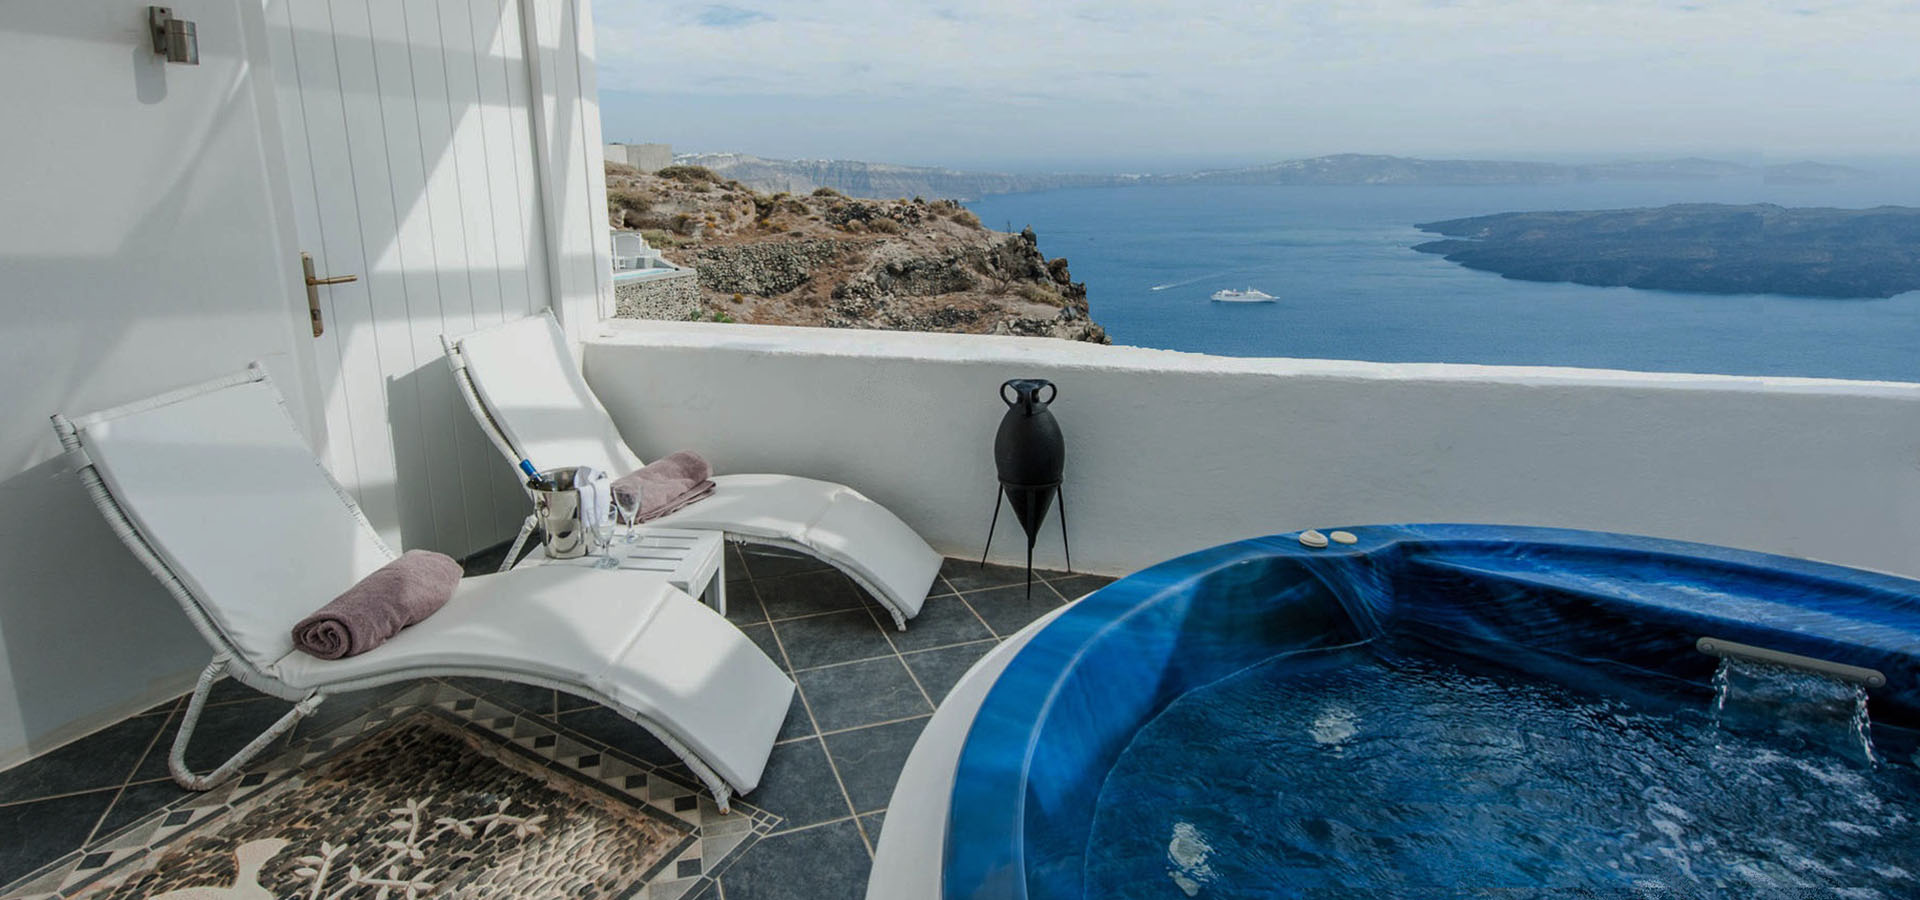 Luxury Hotel in Santorini - Aeolos Studios & Suites